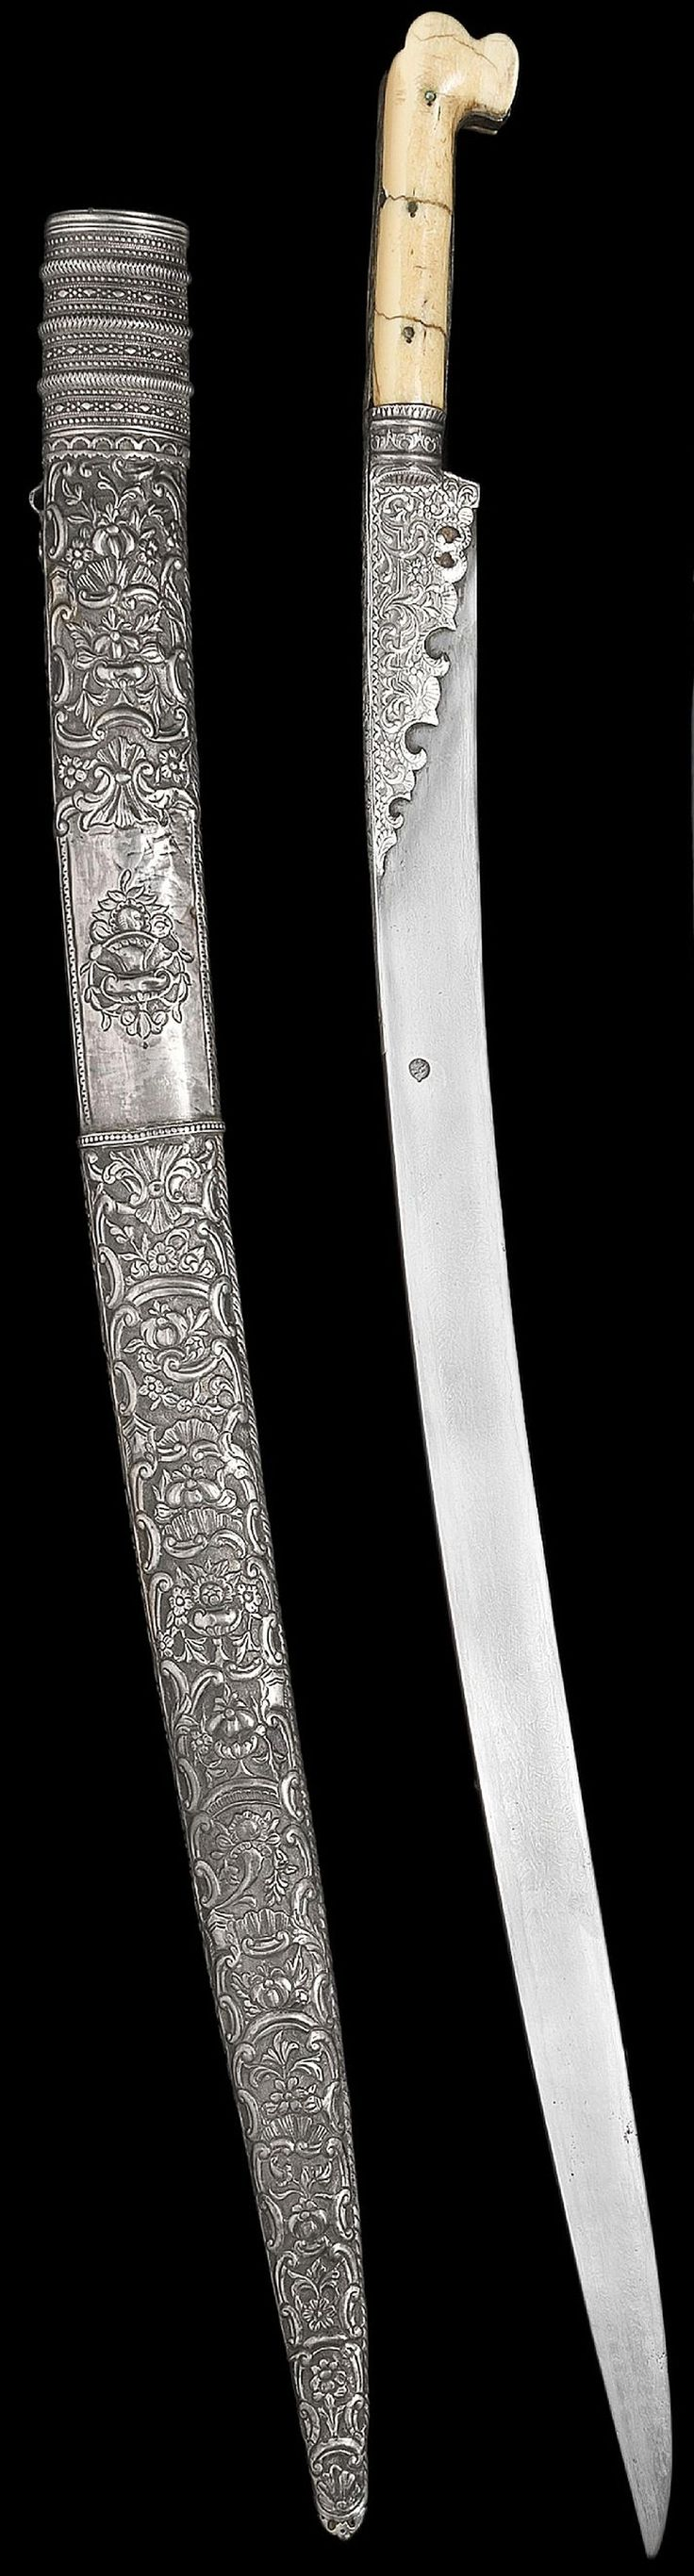 Ottoman yatagan, 19th century, with slightly curved tapering single edged watered steel blade with makers mark, the forte and centre of the ivory hilt mounted with embossed silver, decorated with continuous rococo style floral interlace, its wood scabbard entirely covered in silver elaborately embossed with rococo style foliage and urns containing floral sprays, 77.7 cm. long.